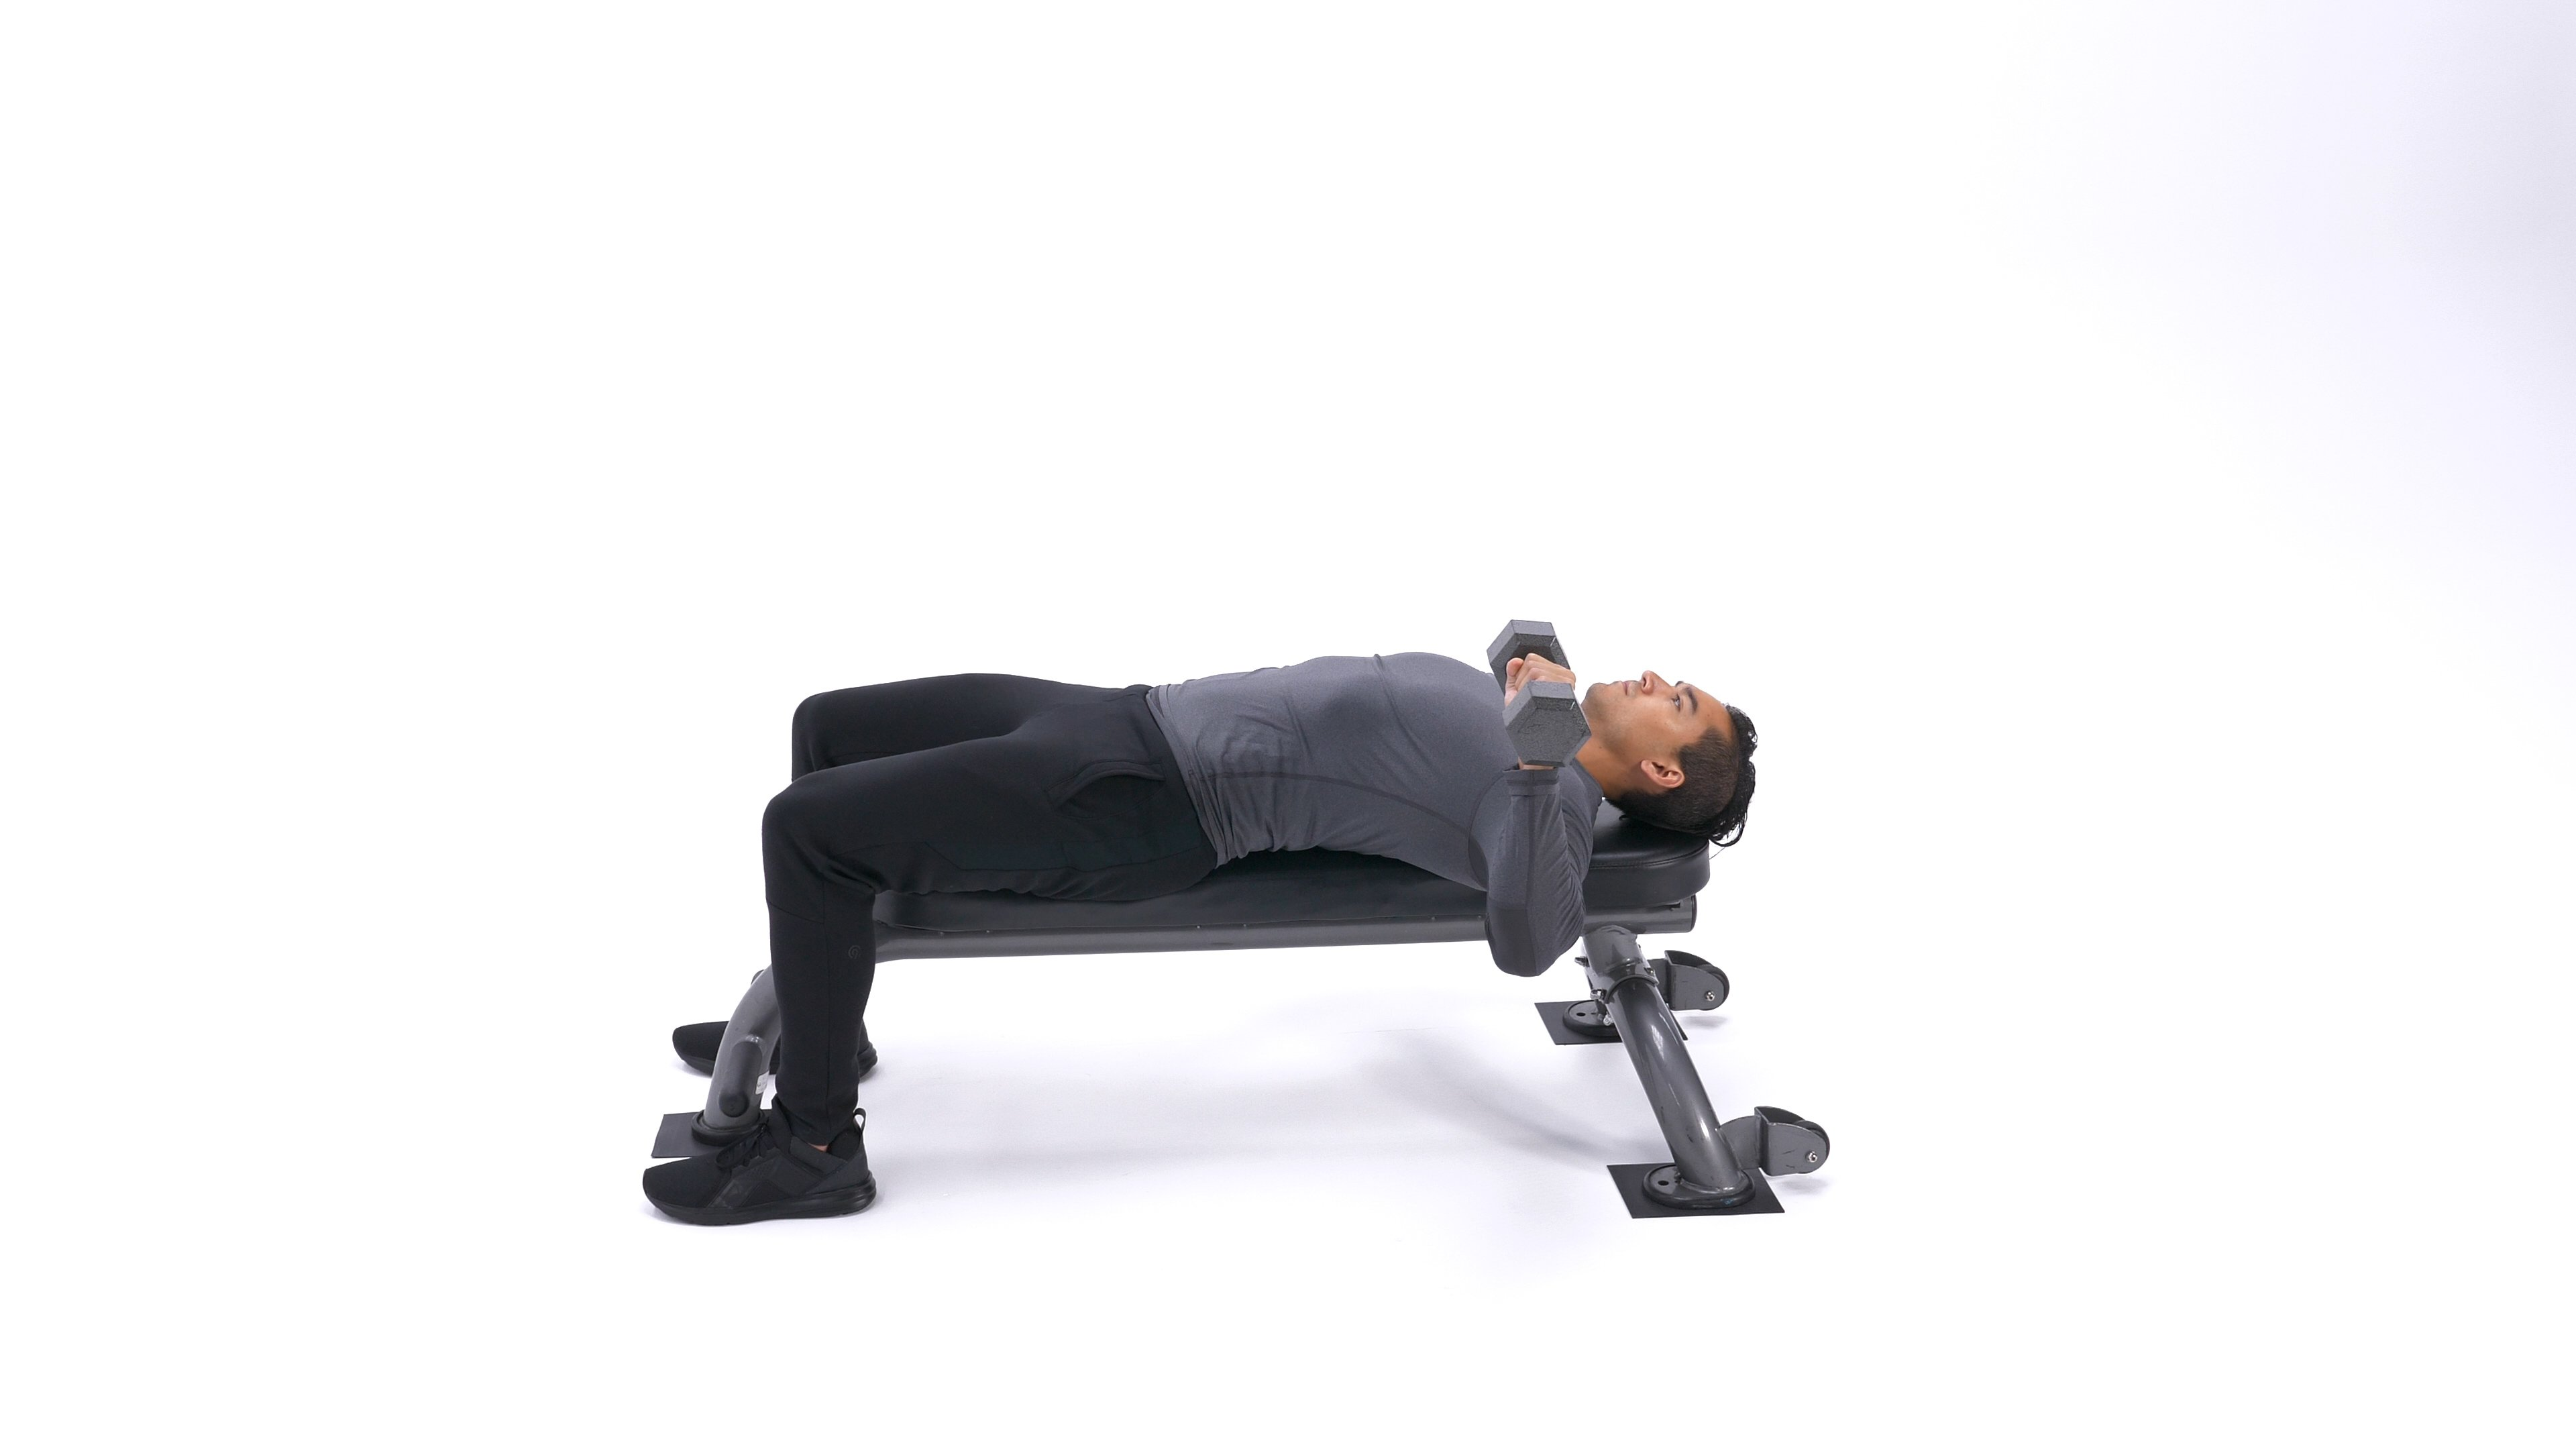 One Arm Dumbbell Bench Press image